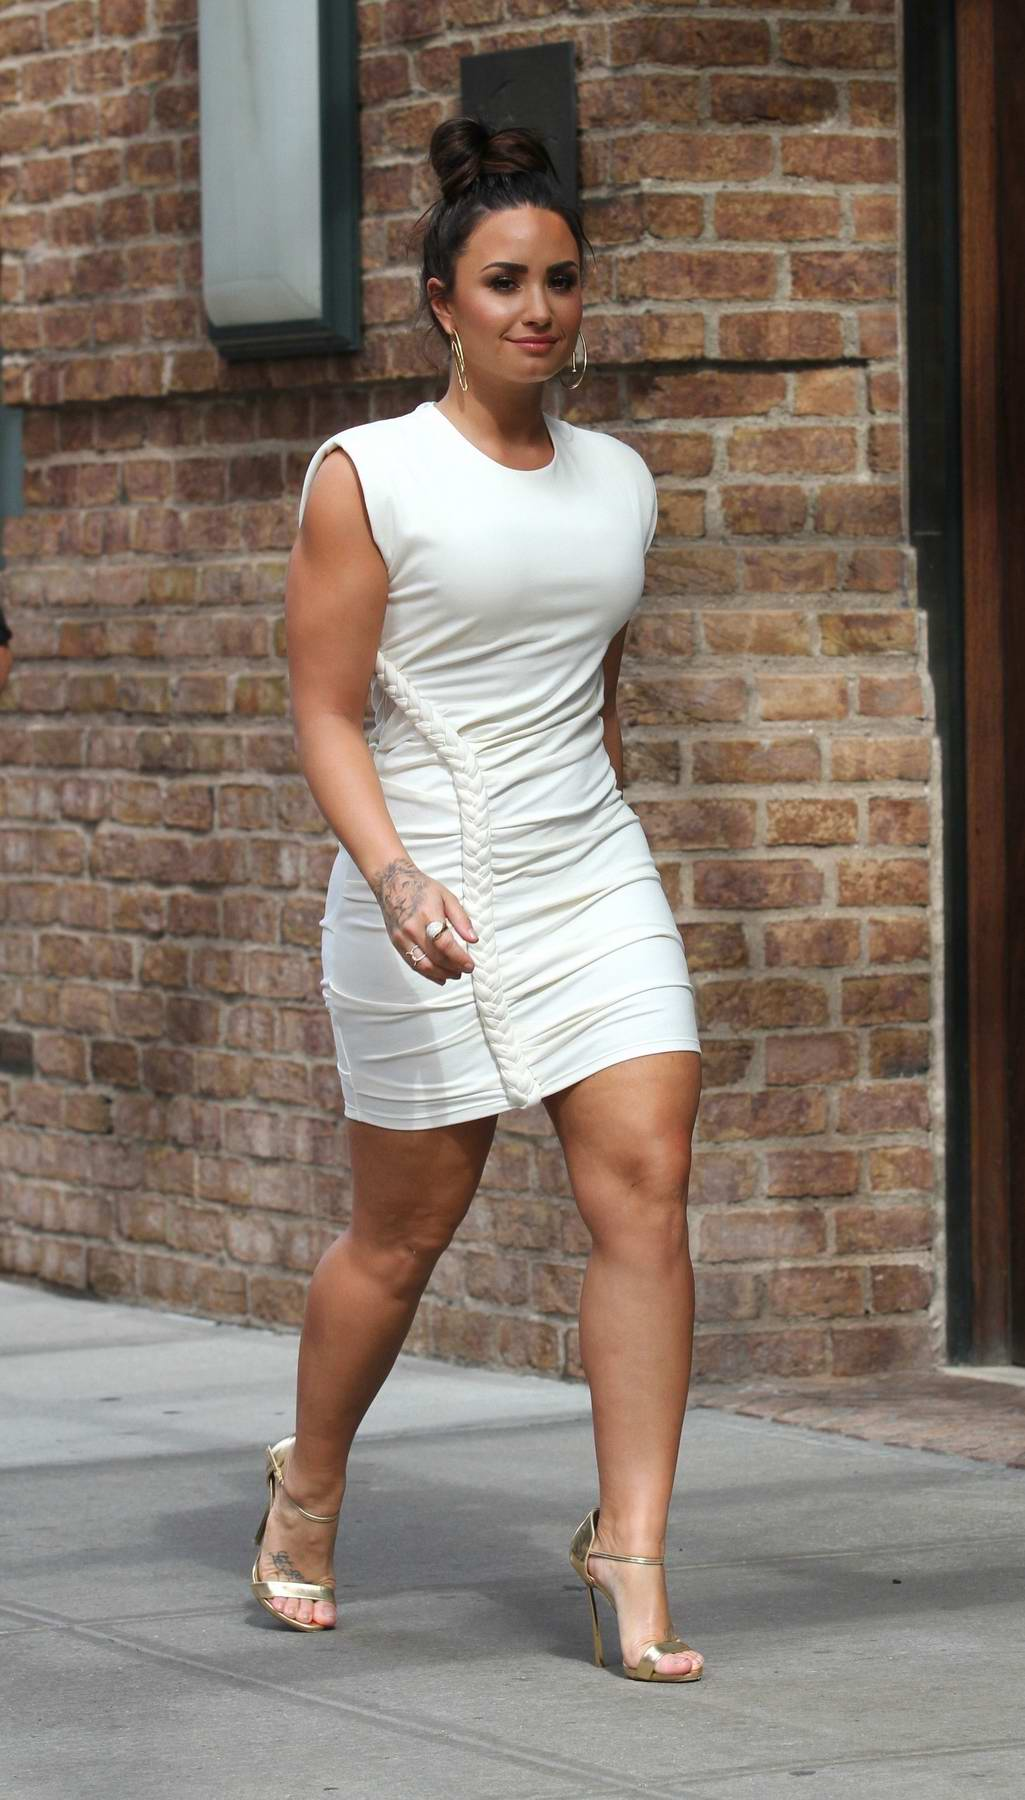 Demi Lovato in a short white dress out and about in Tribeca, New York